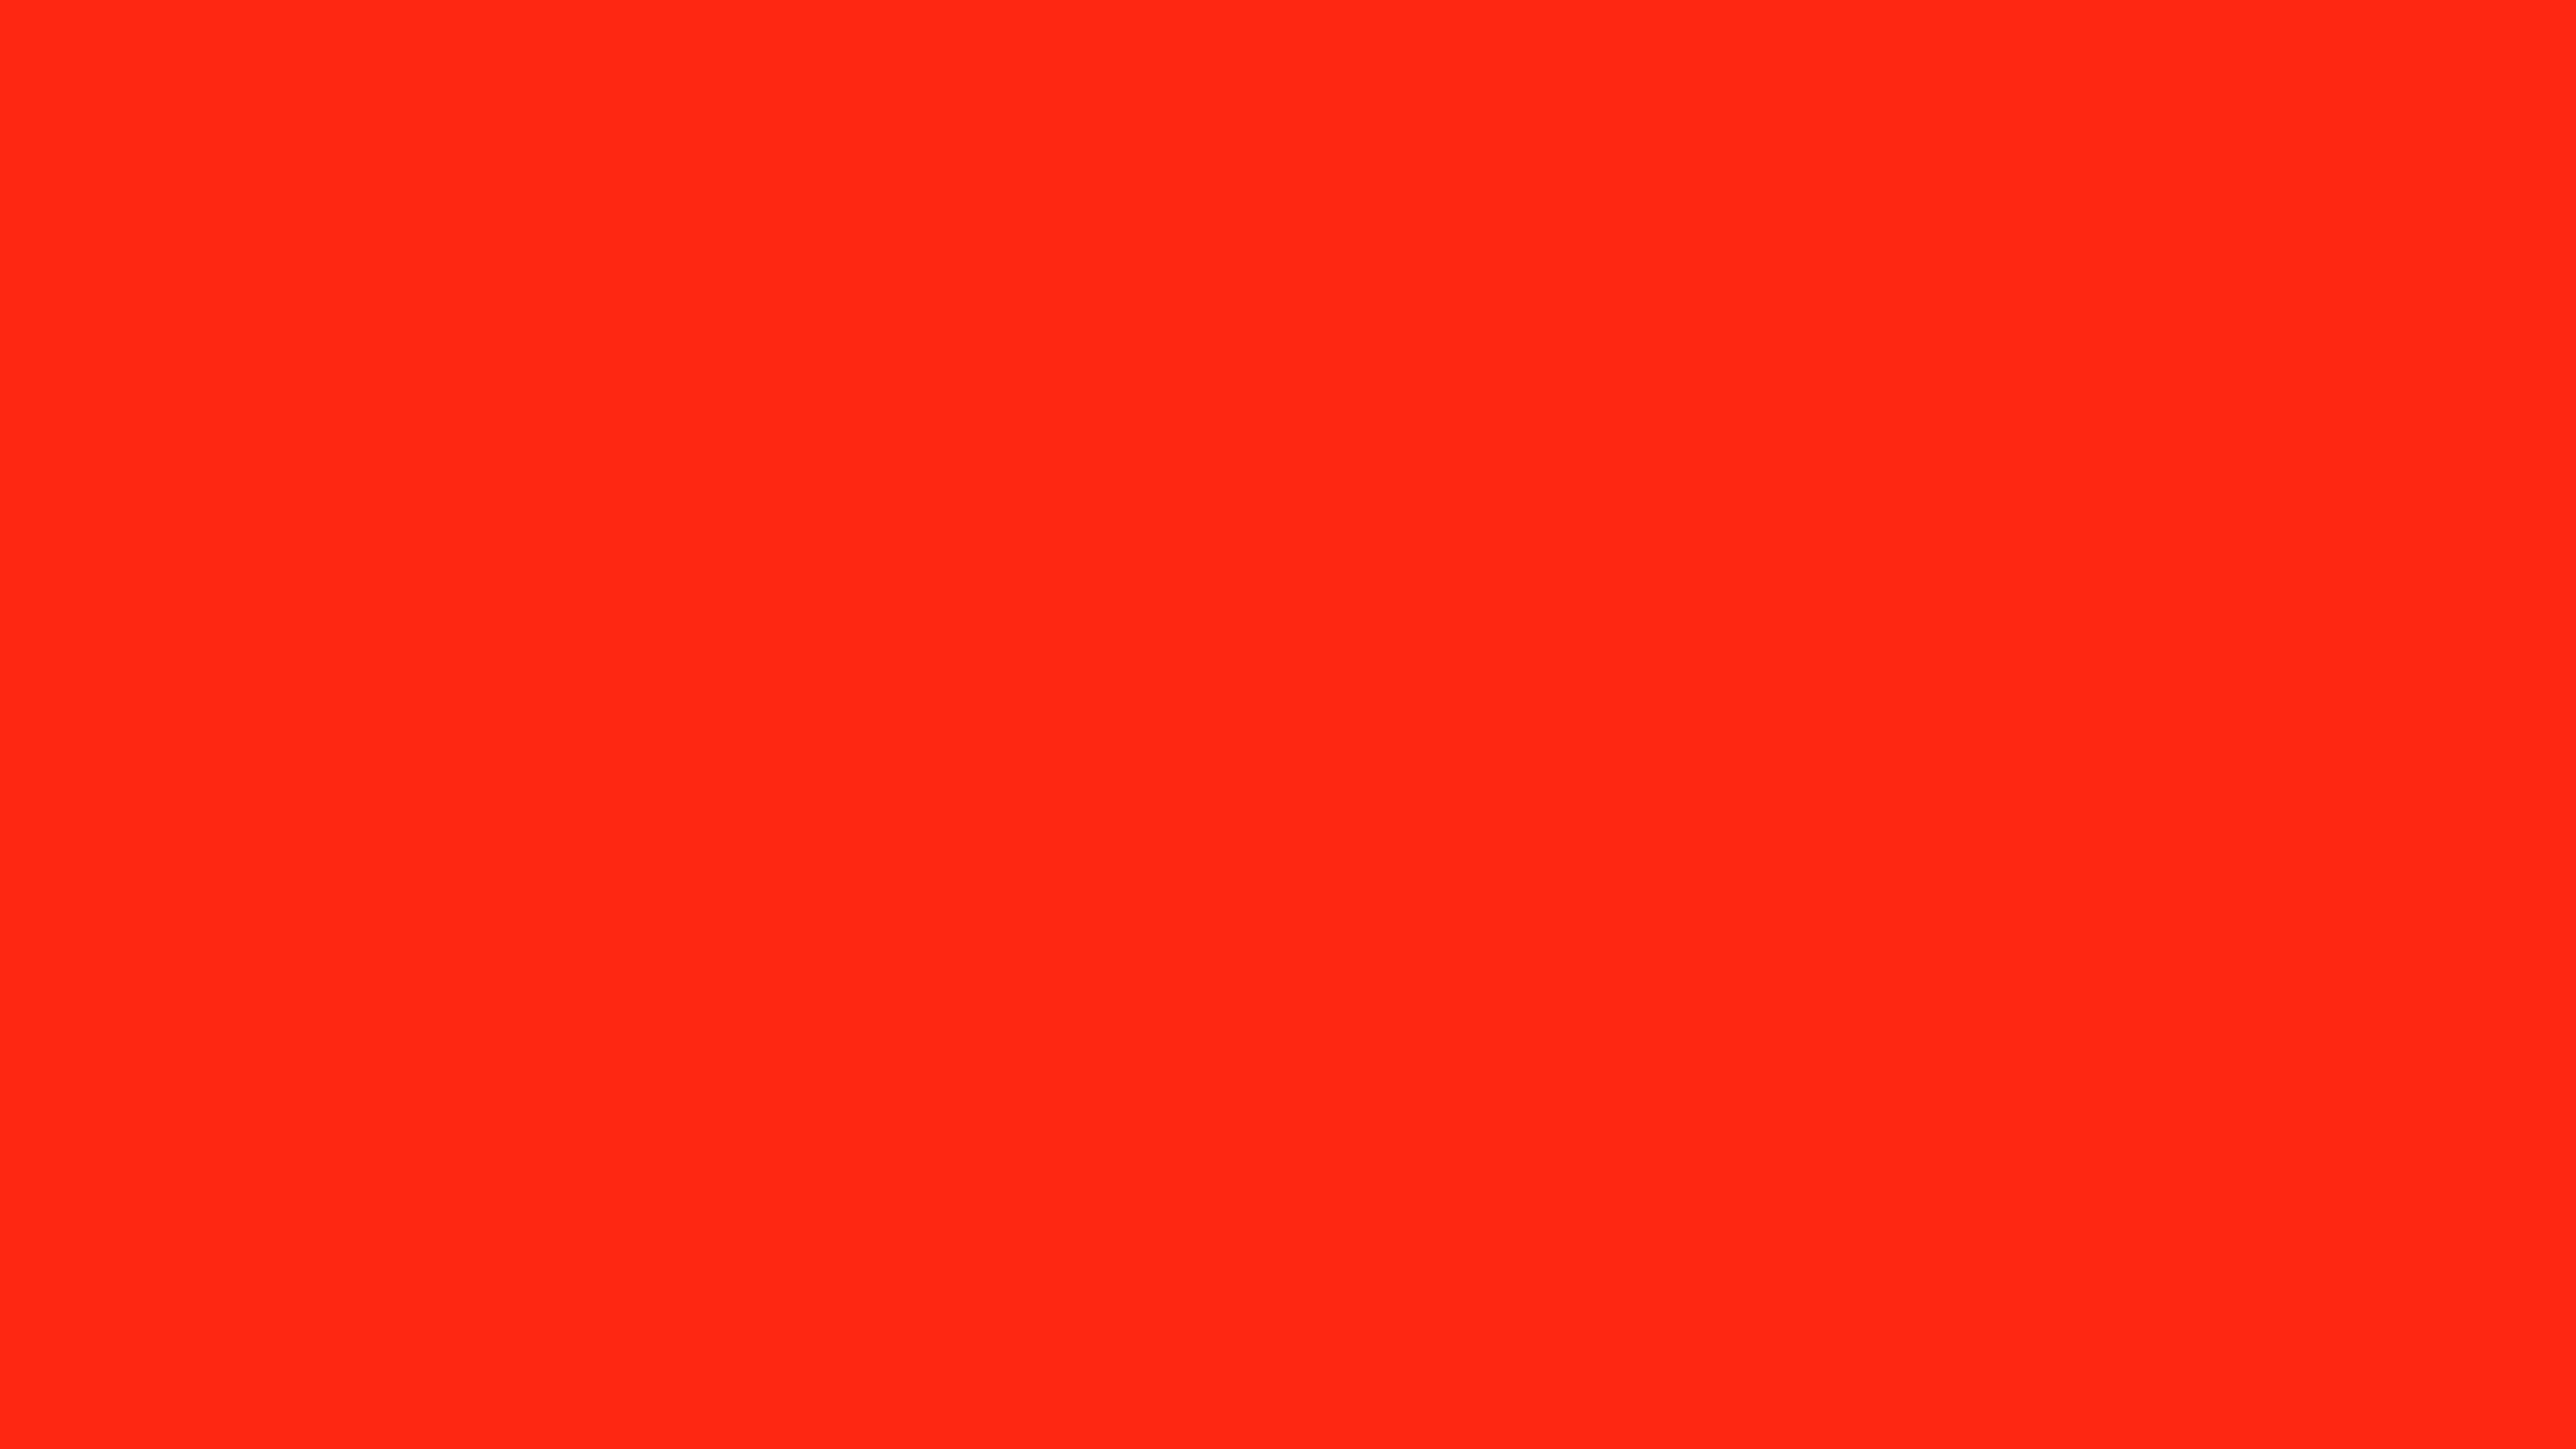 3840x2160 Red RYB Solid Color Background